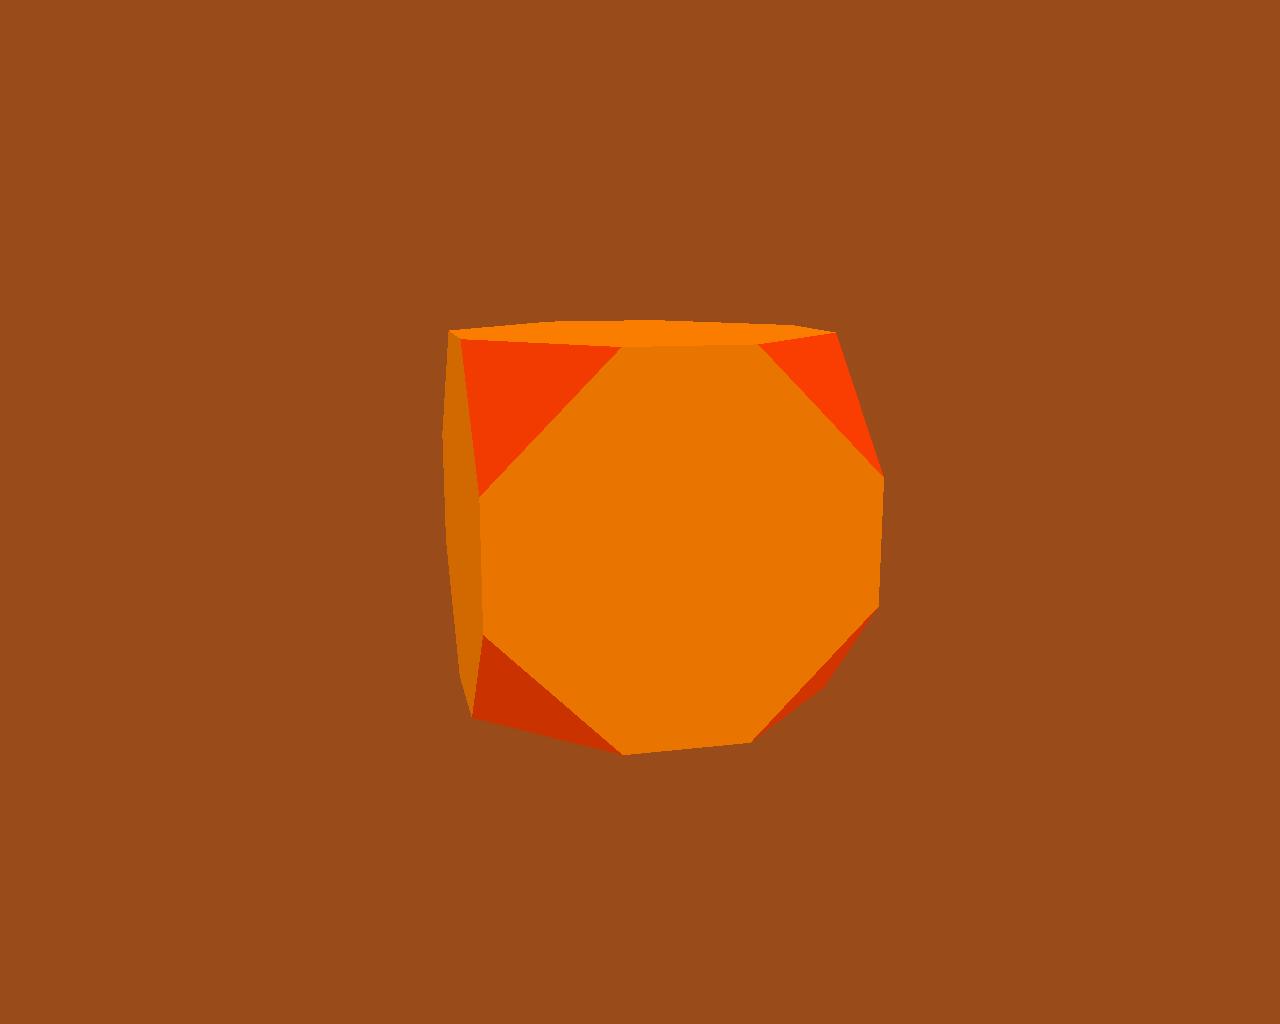 A truncated cube